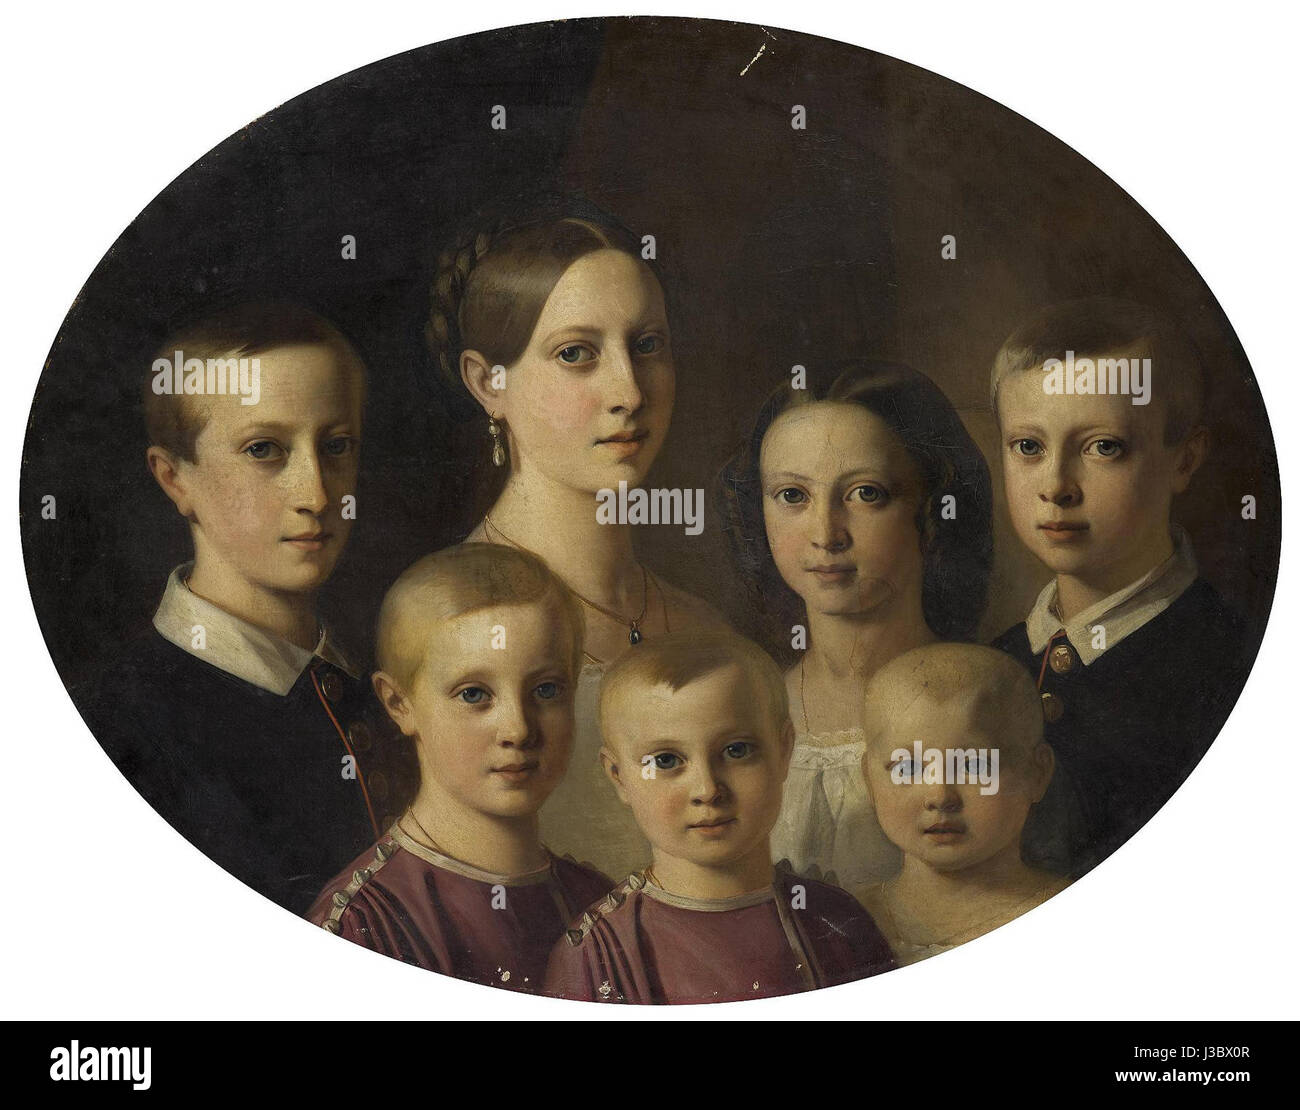 Duke of Oldenburg's children by V.J. De Gronckel (1853, Hermitage) - Stock Image